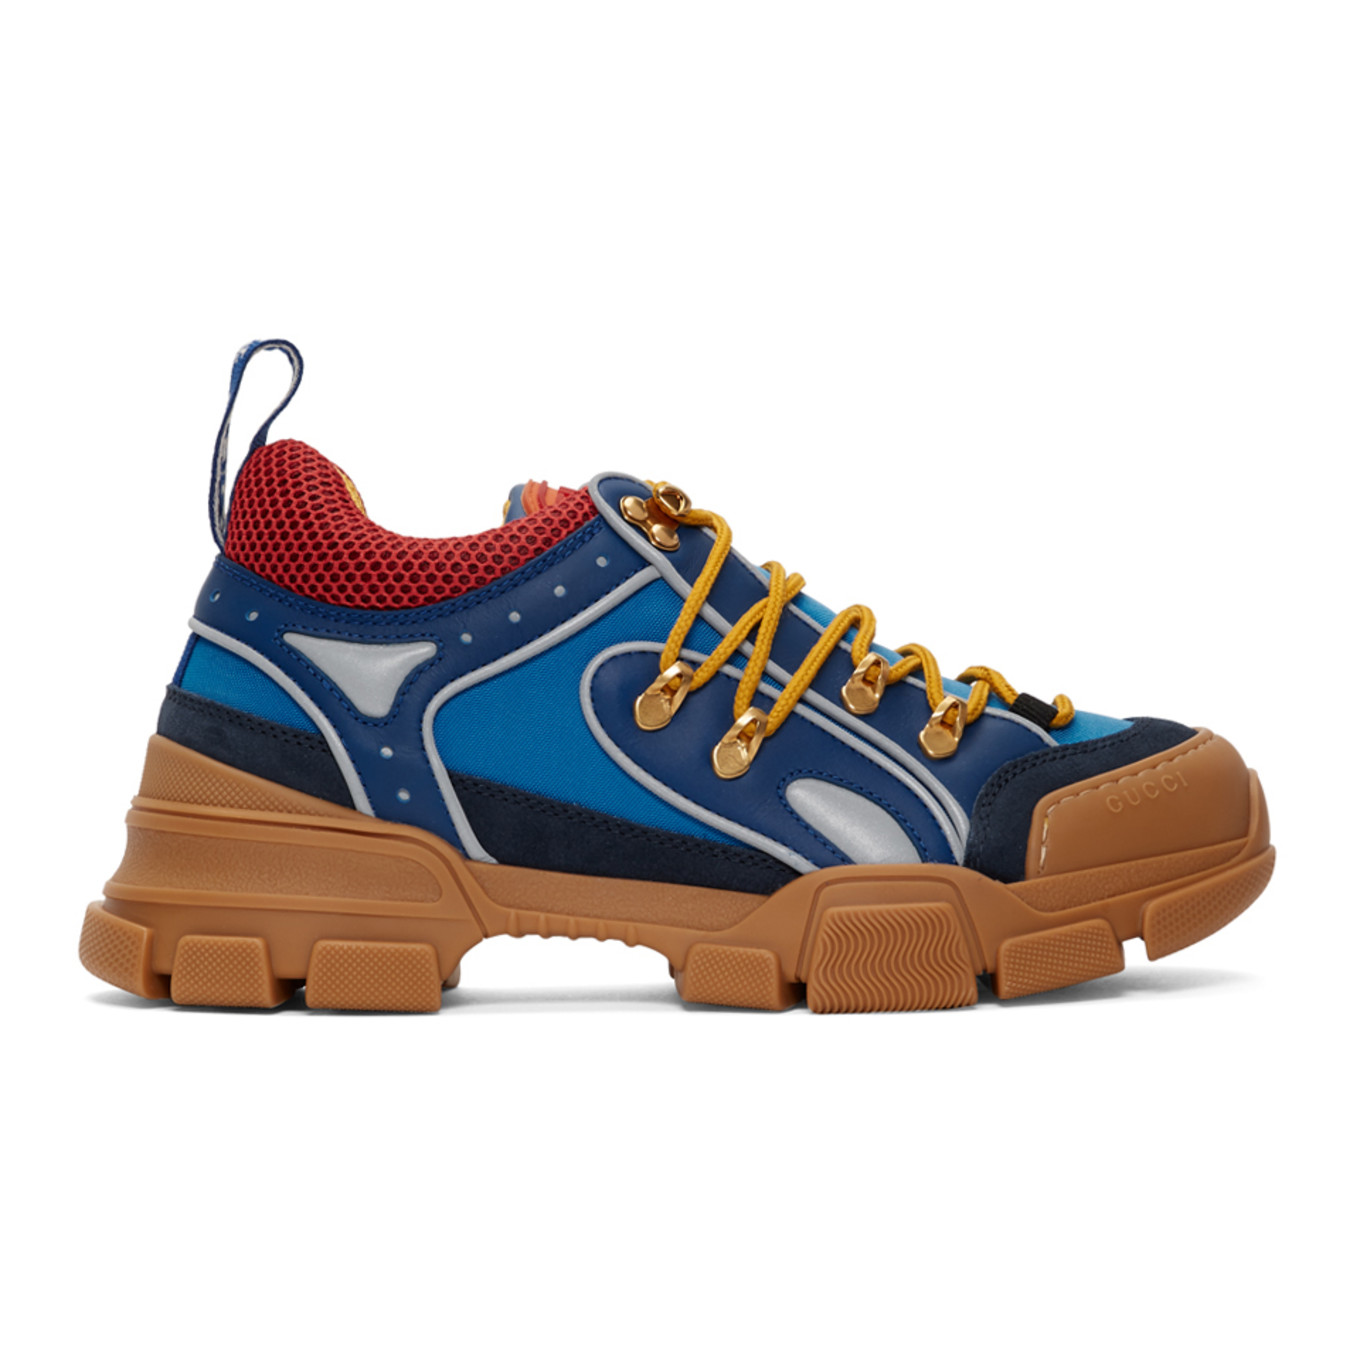 Blue & Tan Flashtrek Sneakers by Gucci